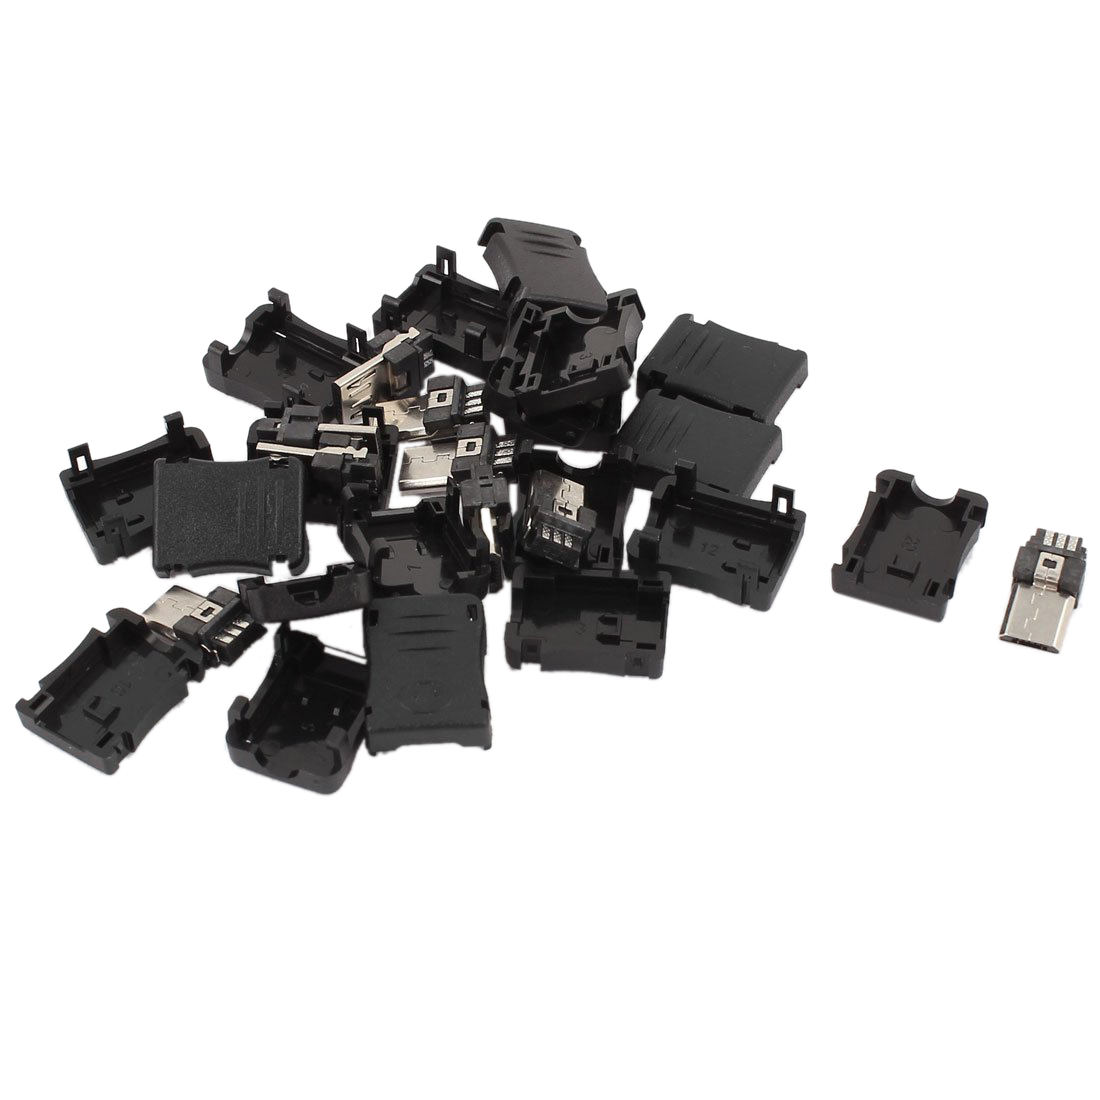 10PCS 5 Pin Micro USB Type B Male Plug Connector Plastic Cover